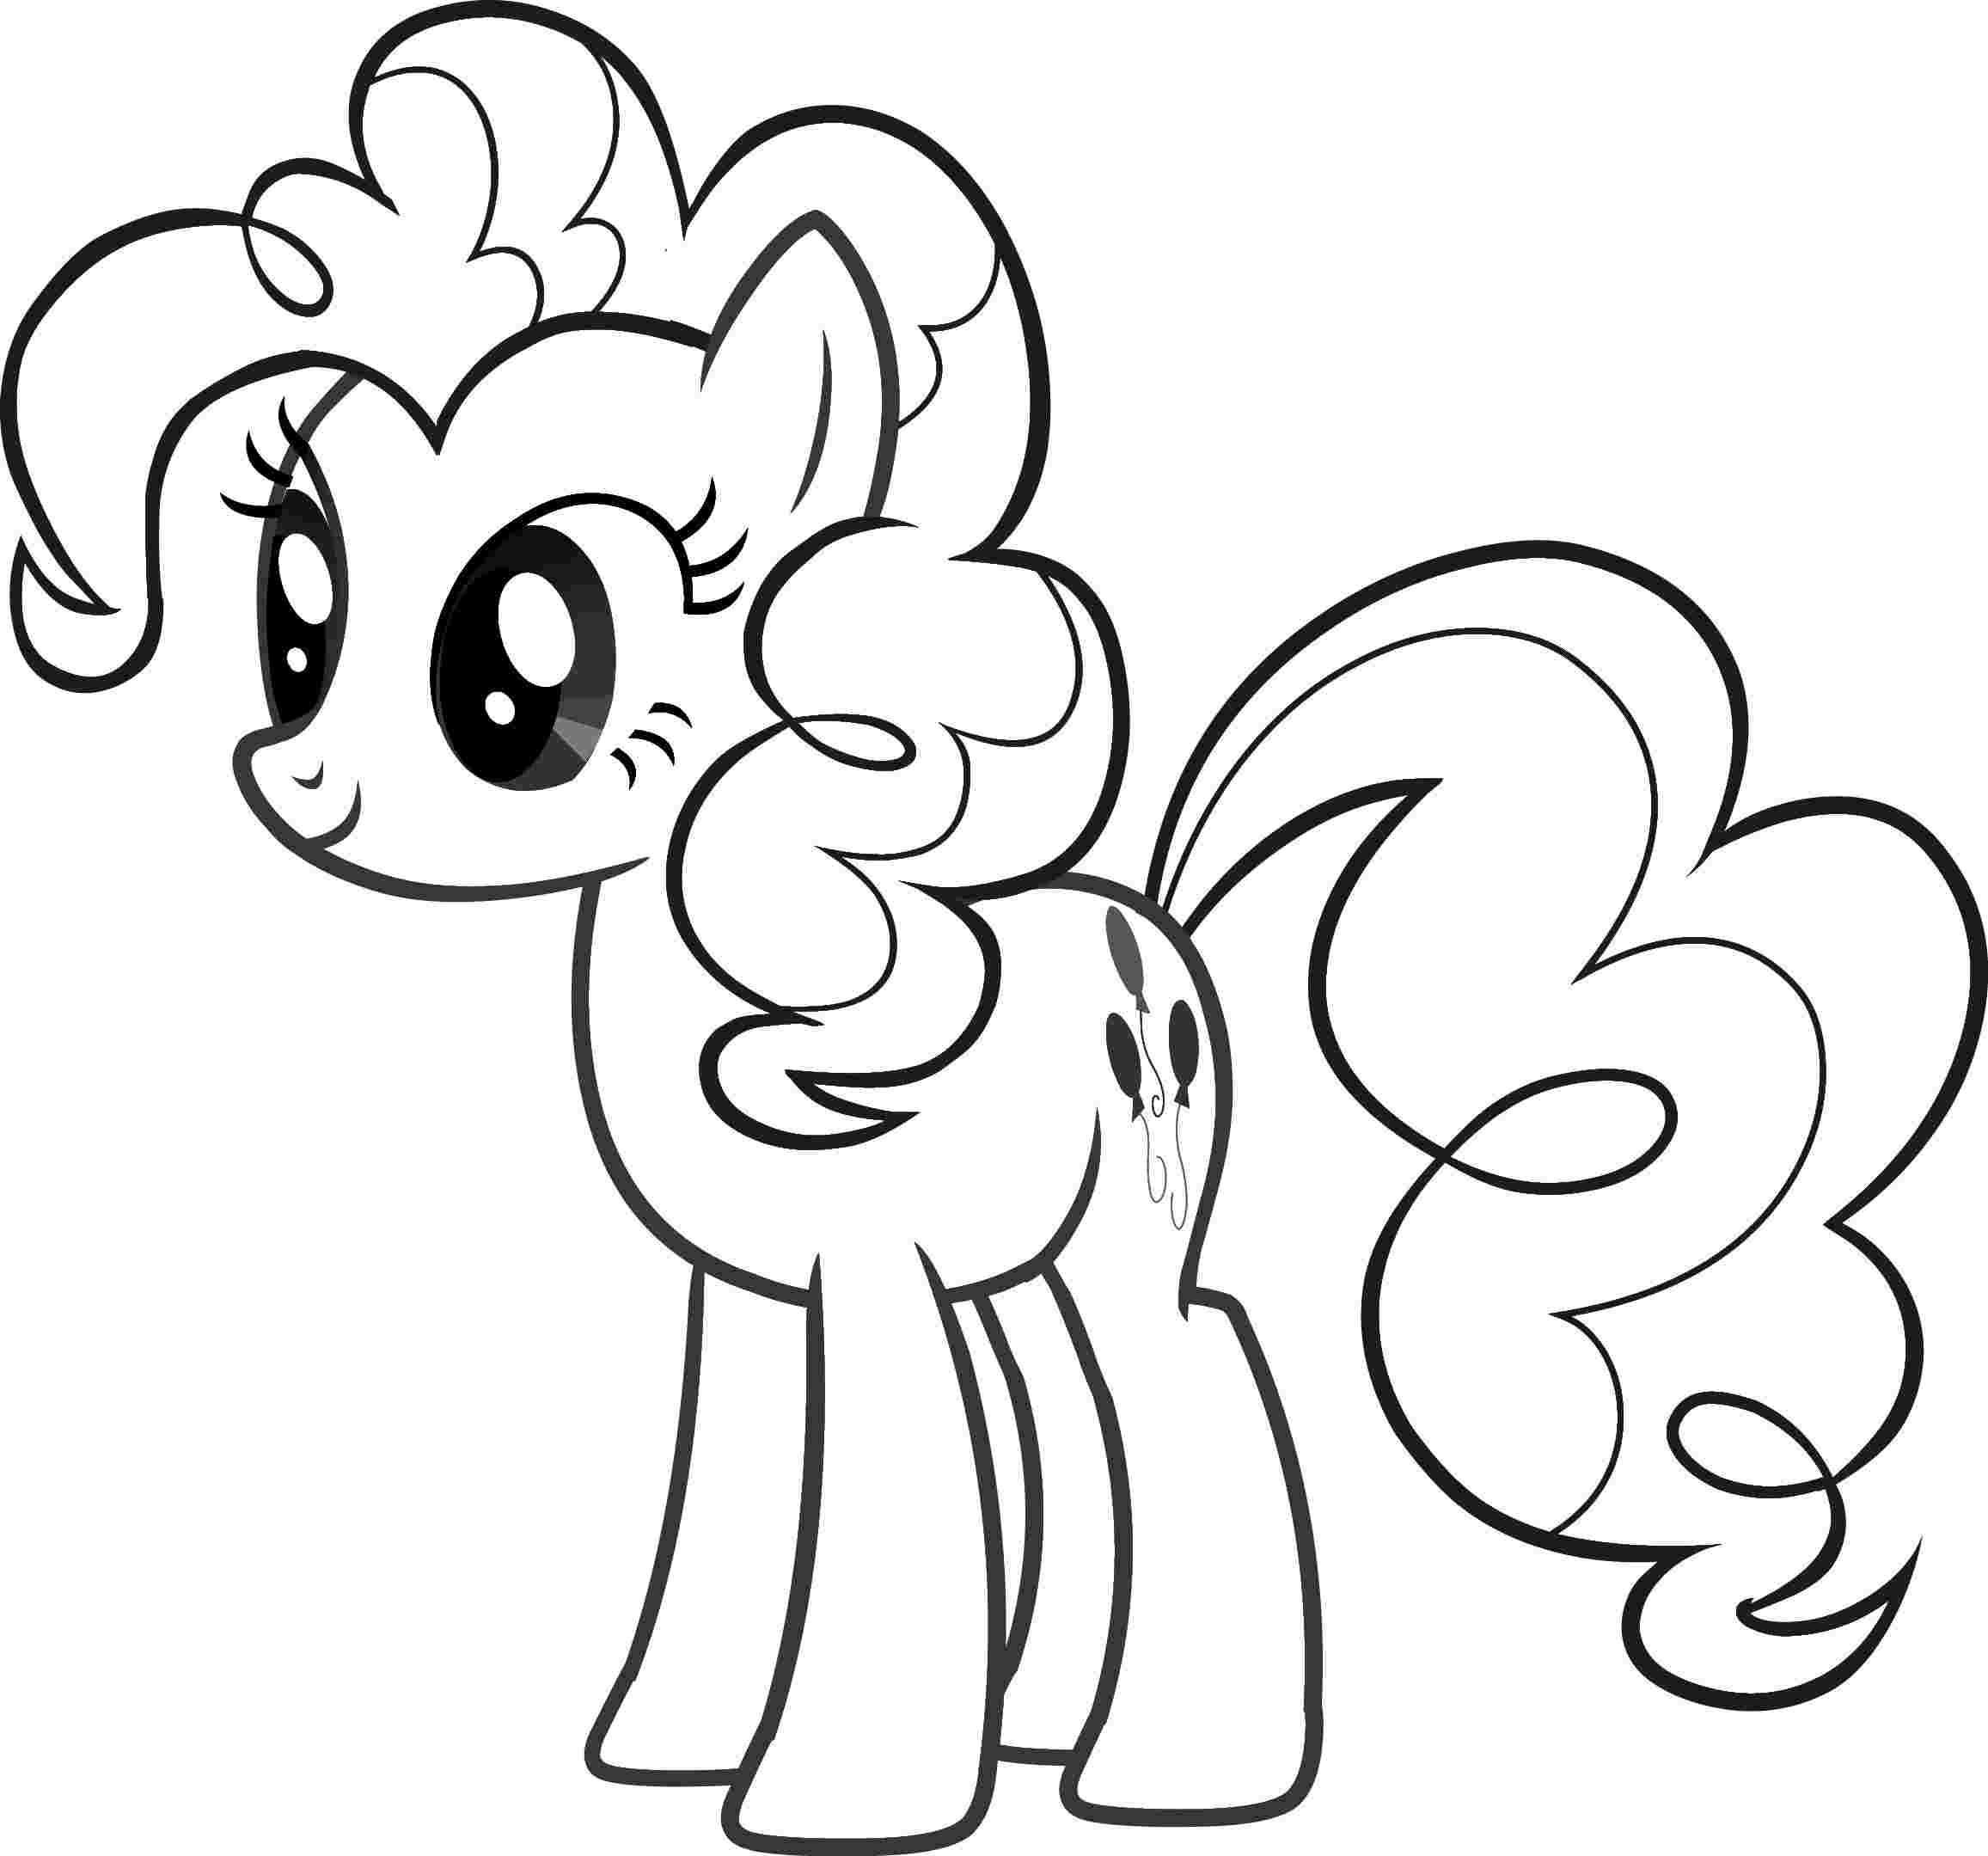 cute easy unicorn coloring pages cute unicorn coloring pages for kids unicorn coloring pages cute easy unicorn coloring